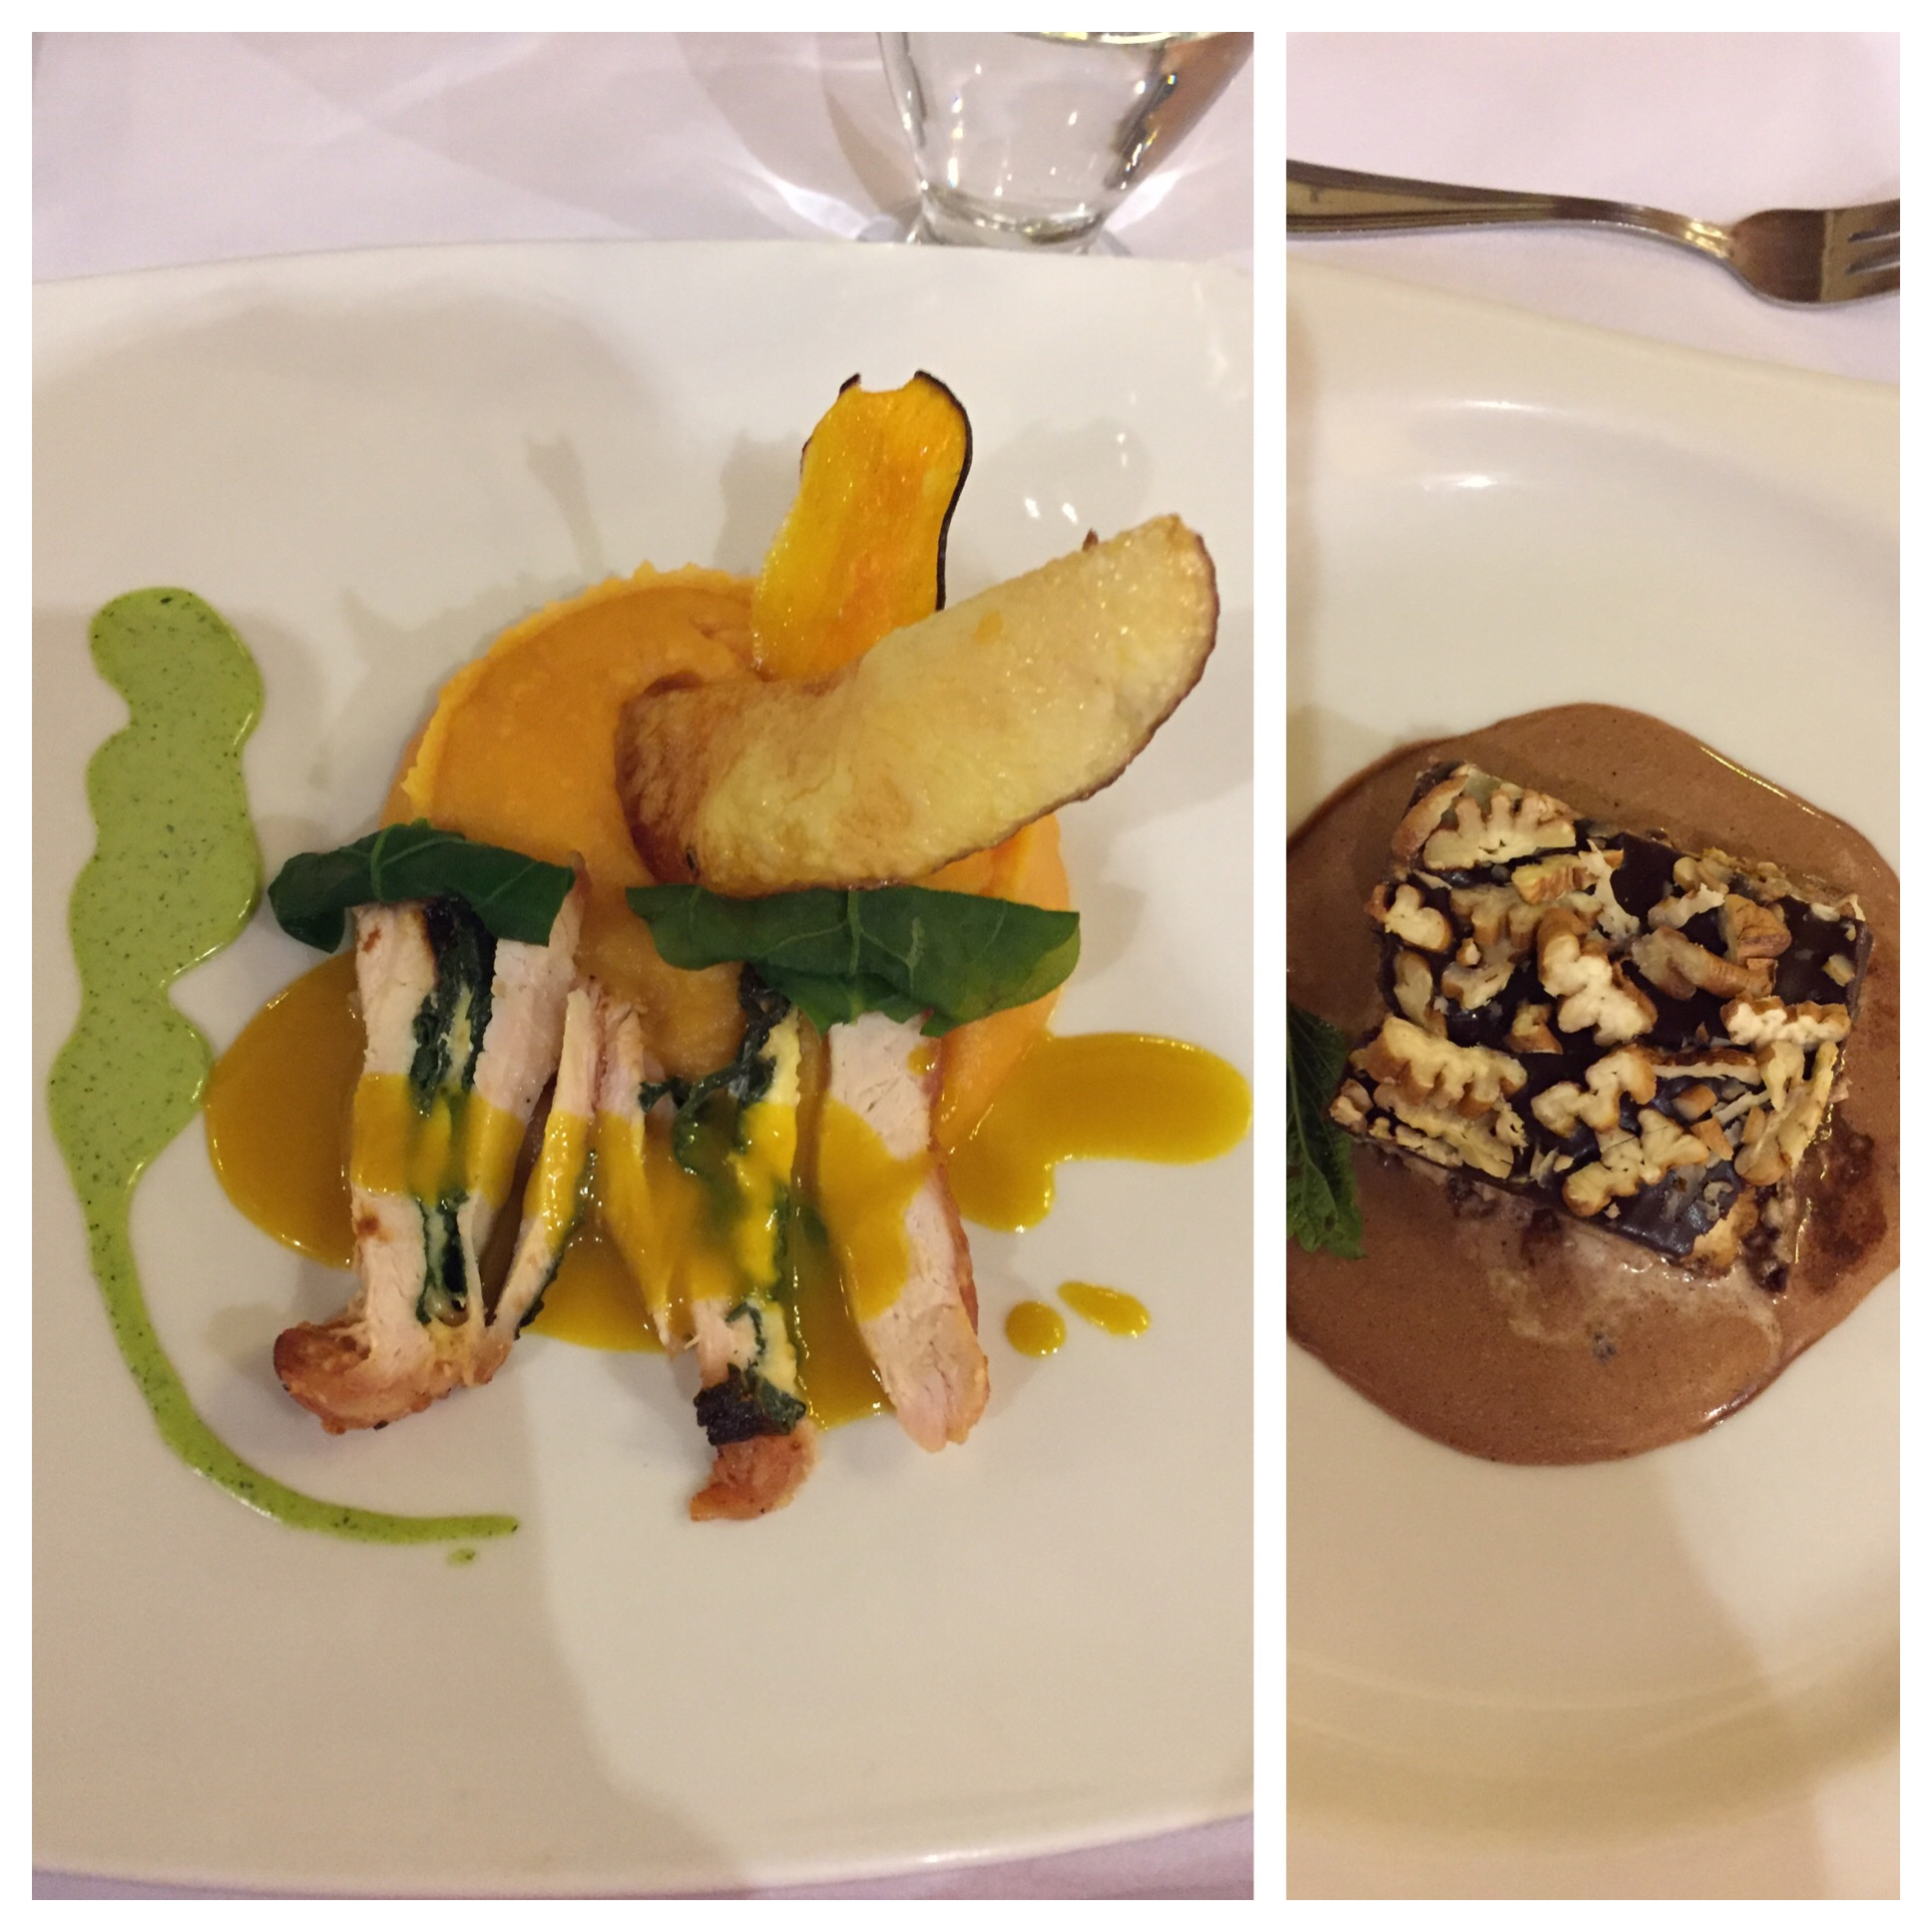 First course was a vegetable soup, 2nd course mashed sweet potato with orange and chicken breast with spinach stuffing. Dessert was chocolate tiramisu- all wonderful.